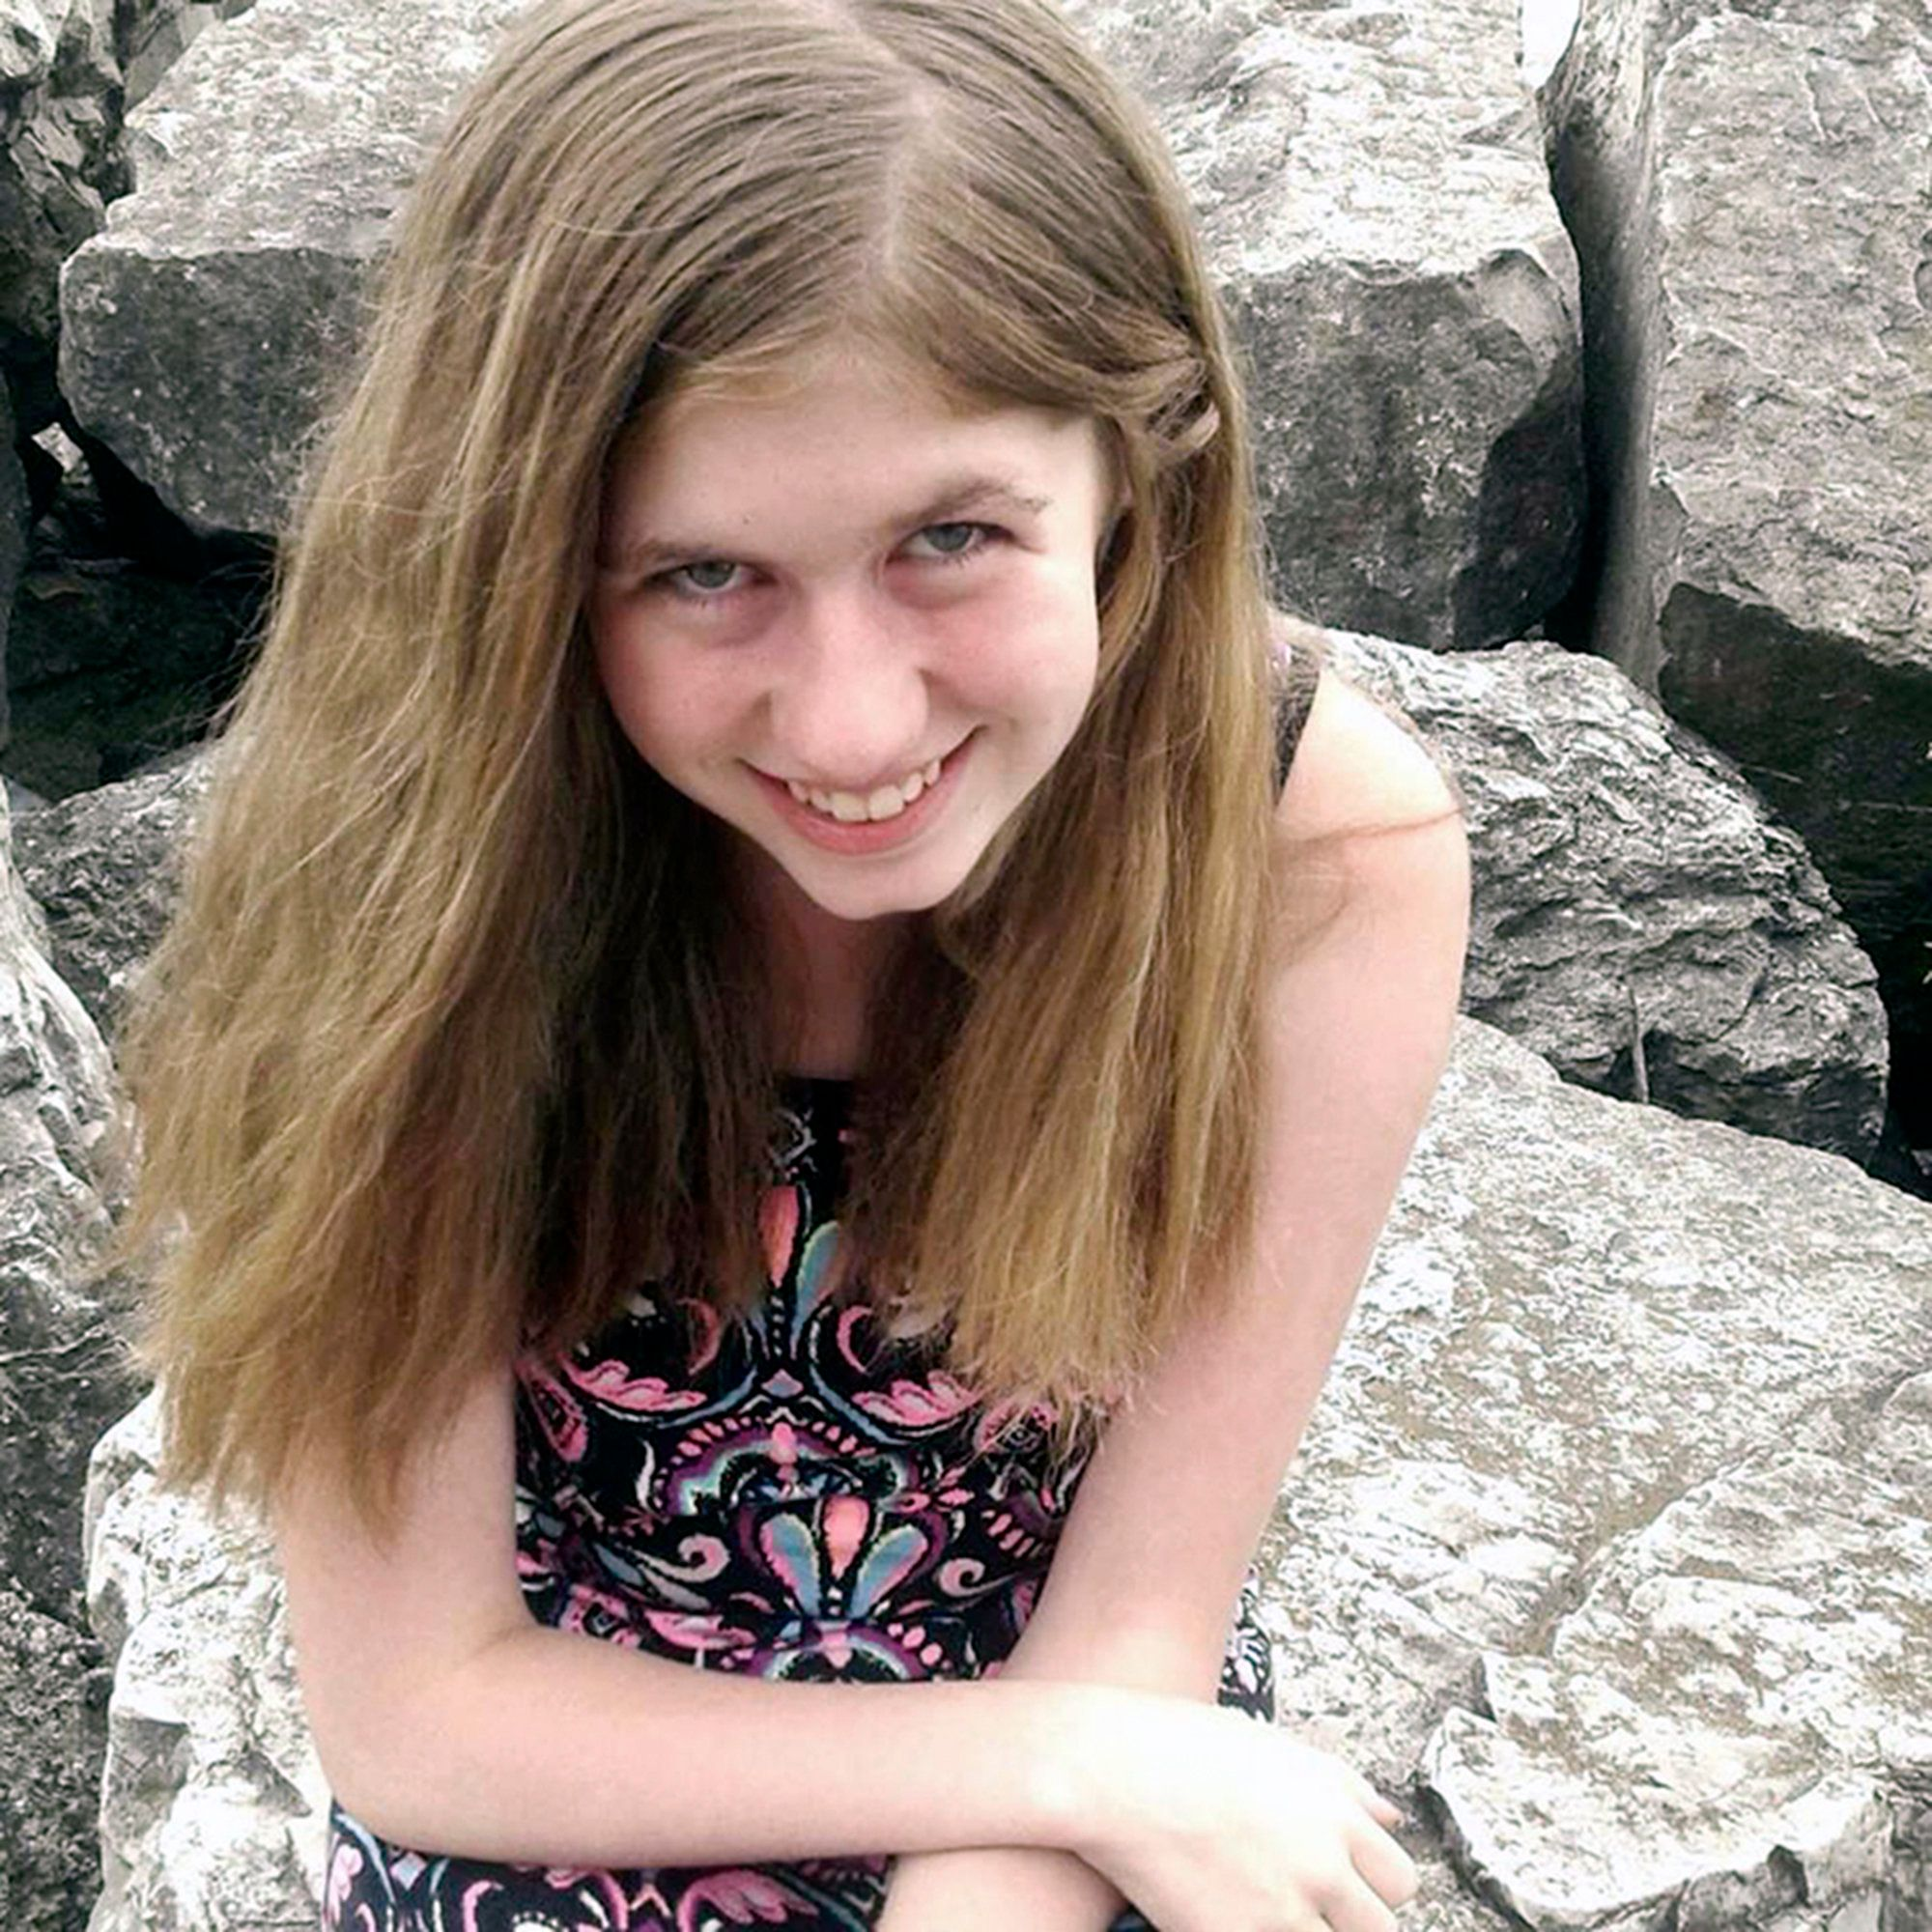 """FILE - This undated file photo provided by Barron County, Wis., Sheriff's Department, shows Jayme Closs, who was discovered missing Oct. 15, 2018, after her parents were found fatally shot at their home in Barron, Wis. People turned out in the city of Barron on Wednesday, Dec. 12 to light up a """"tree of hope"""" in honor of the missing Closs. Detectives have pursued thousands of tips, watched dozens of surveillance videos and spent countless hours searching for Jayme, but their efforts haven't yielded any suspects. (Courtesy of Barron County Sheriff's Department via AP, File)"""